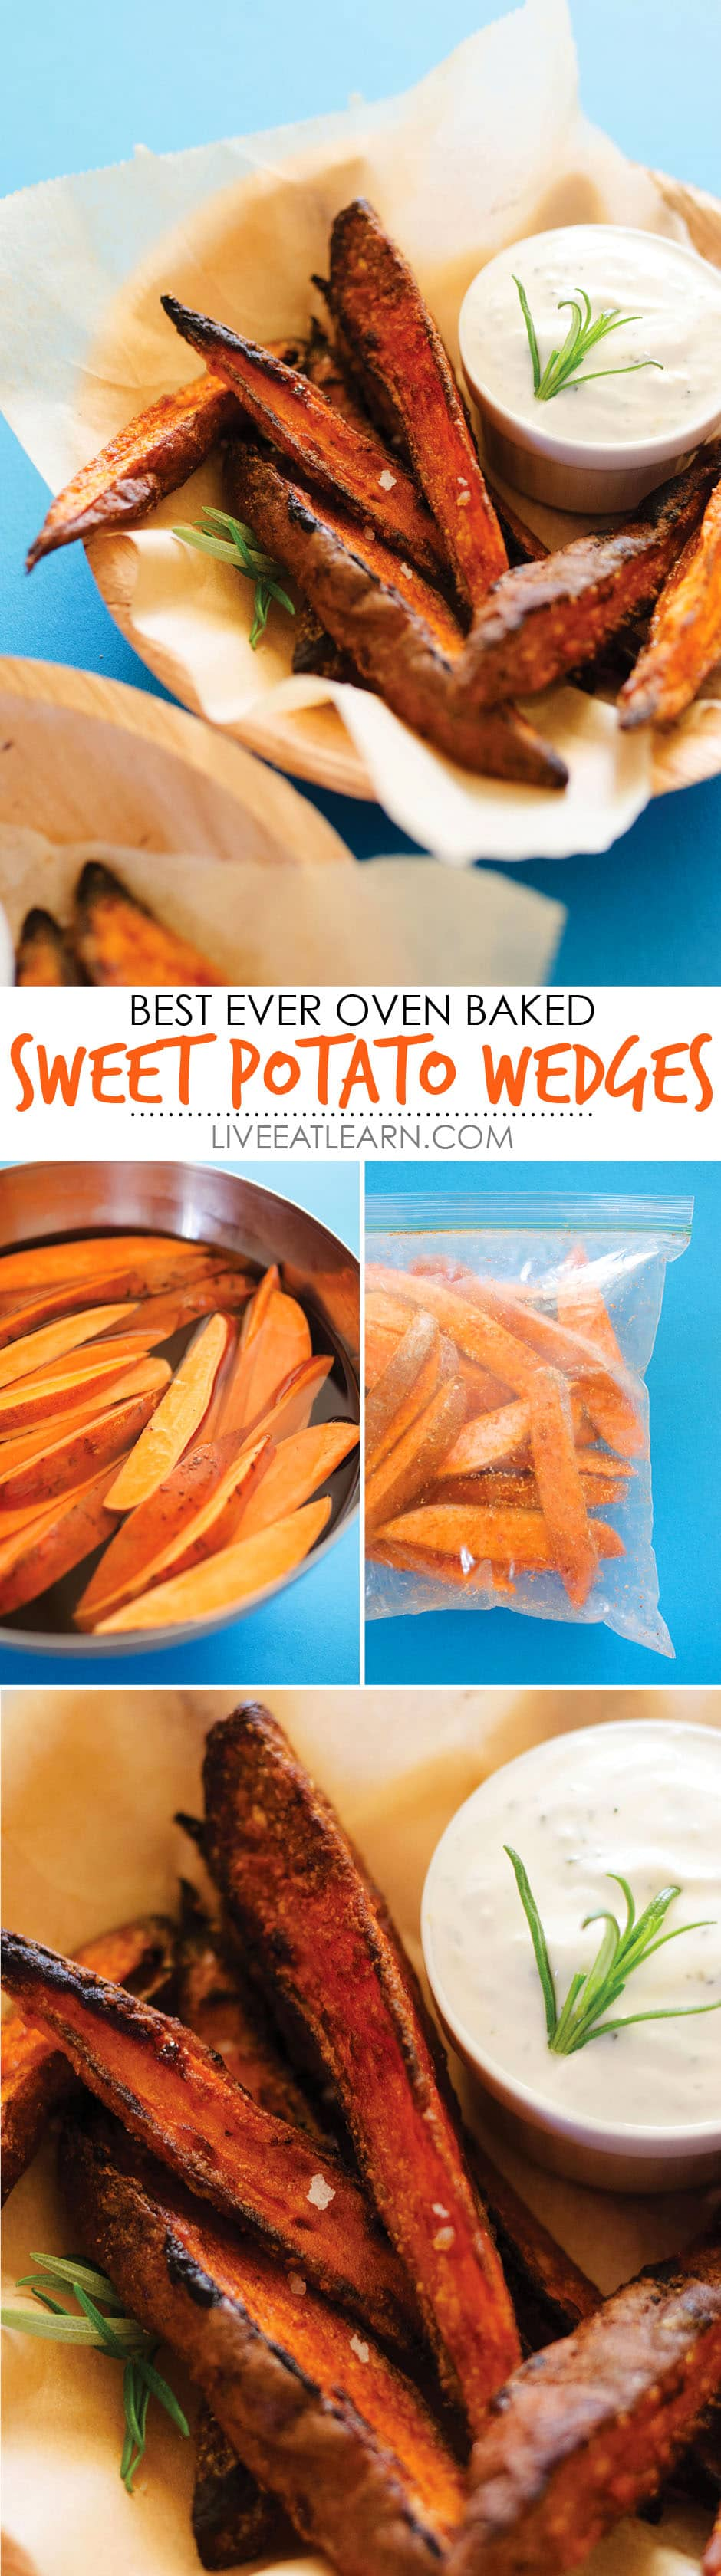 Sweet Potato Wedges with Roasted Garlic Sauce | Live Eat Learn Fried Potato Wedges Calorie